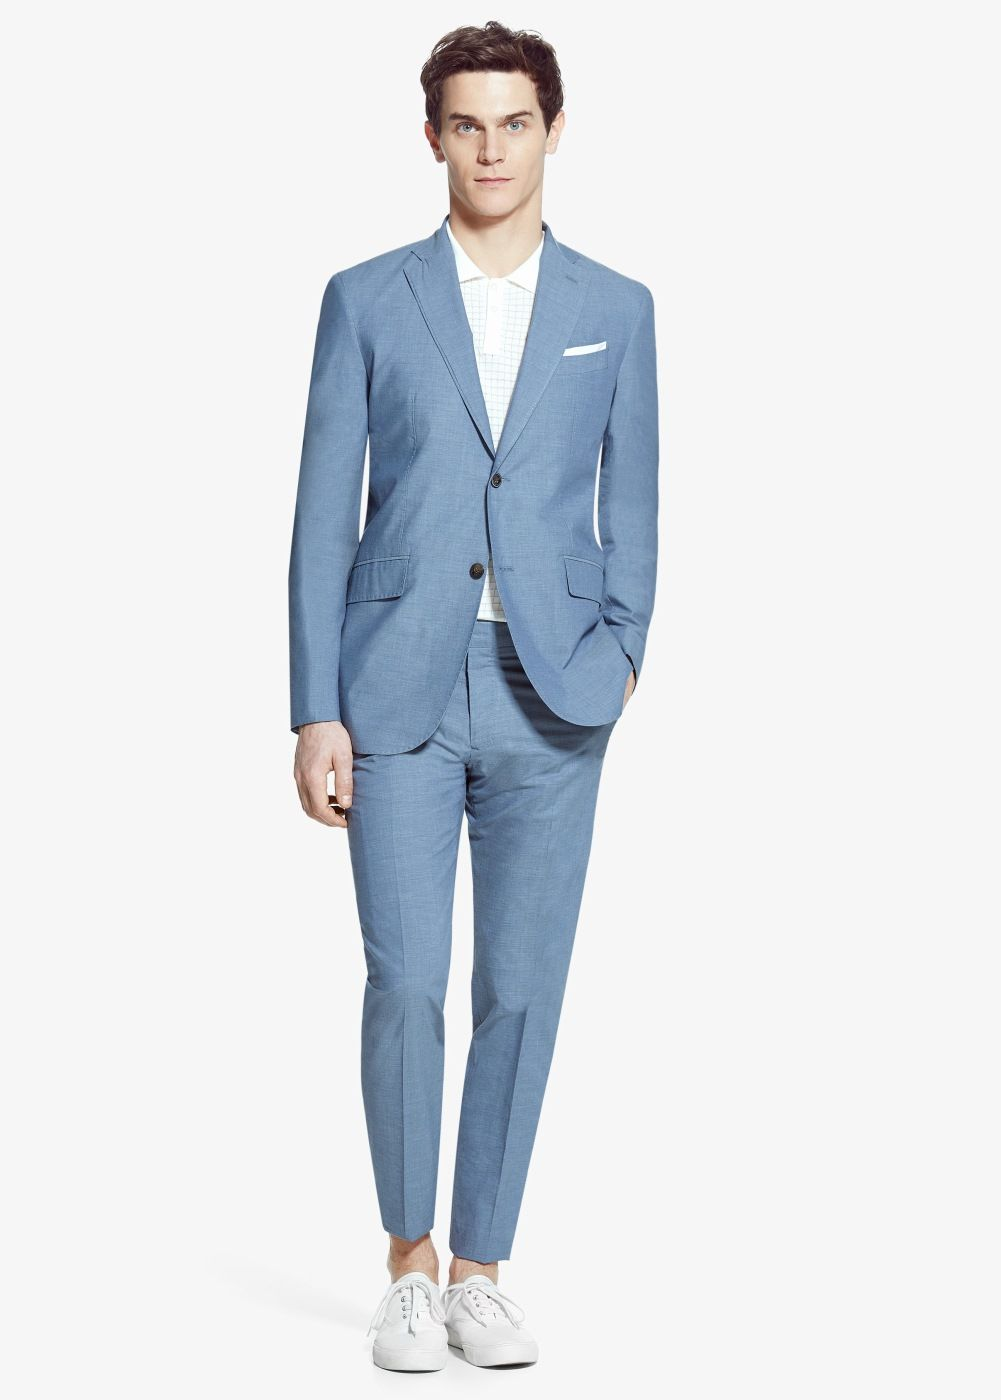 Generous Fitted Wedding Suits Pictures Inspiration - Wedding Ideas ...